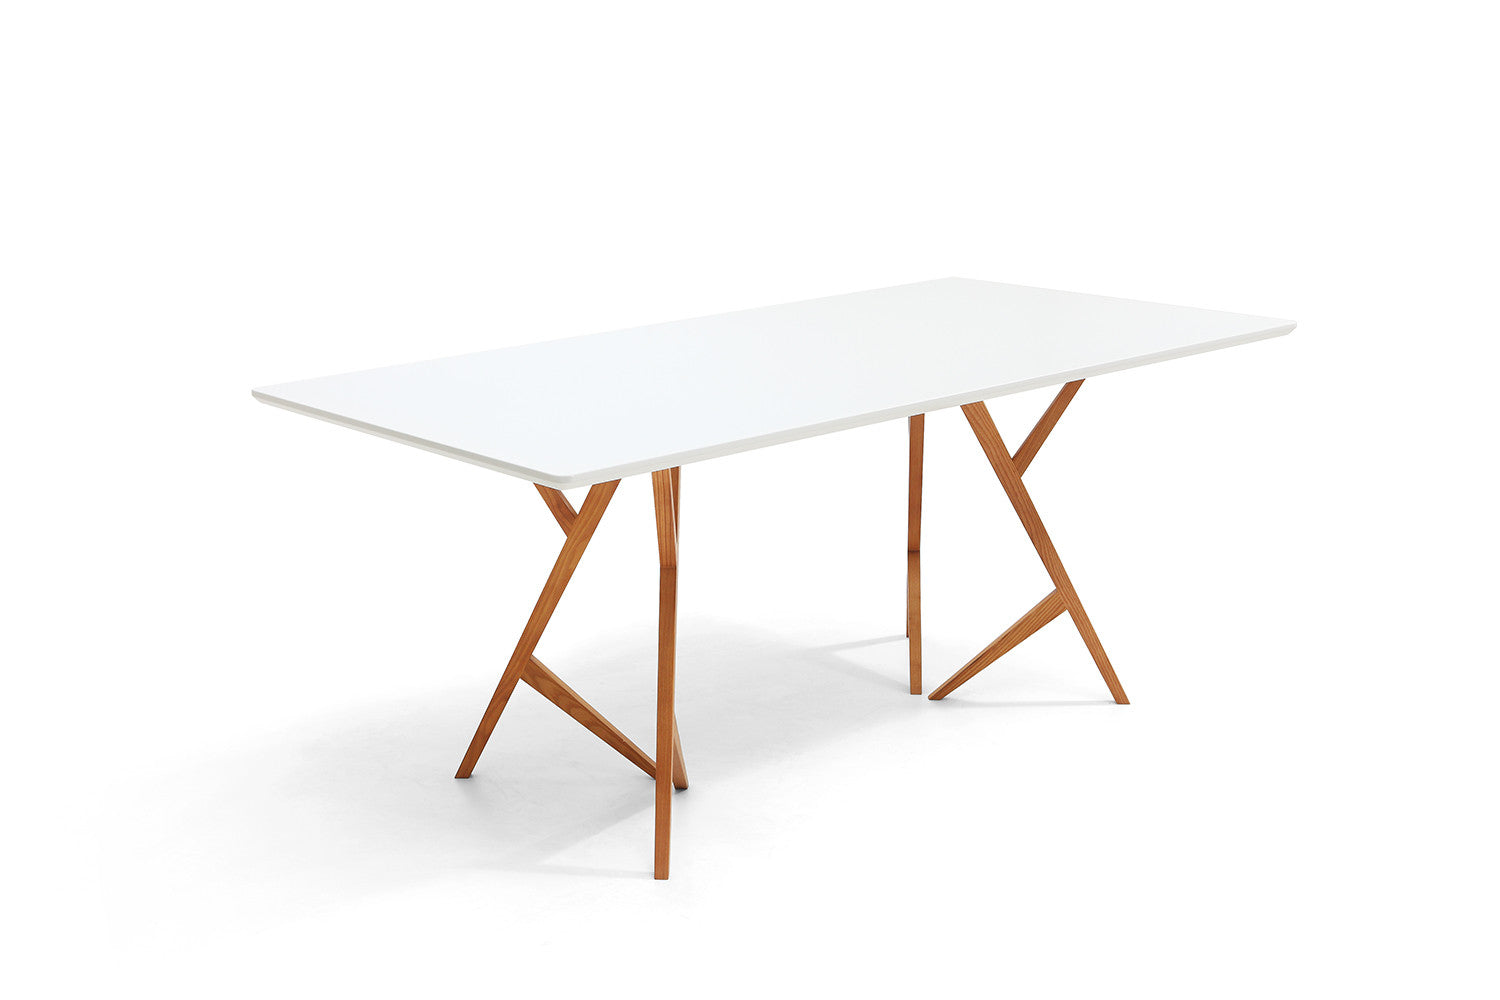 Table de salle manger design scandinave vispa dewarens for Table a manger bois blanc